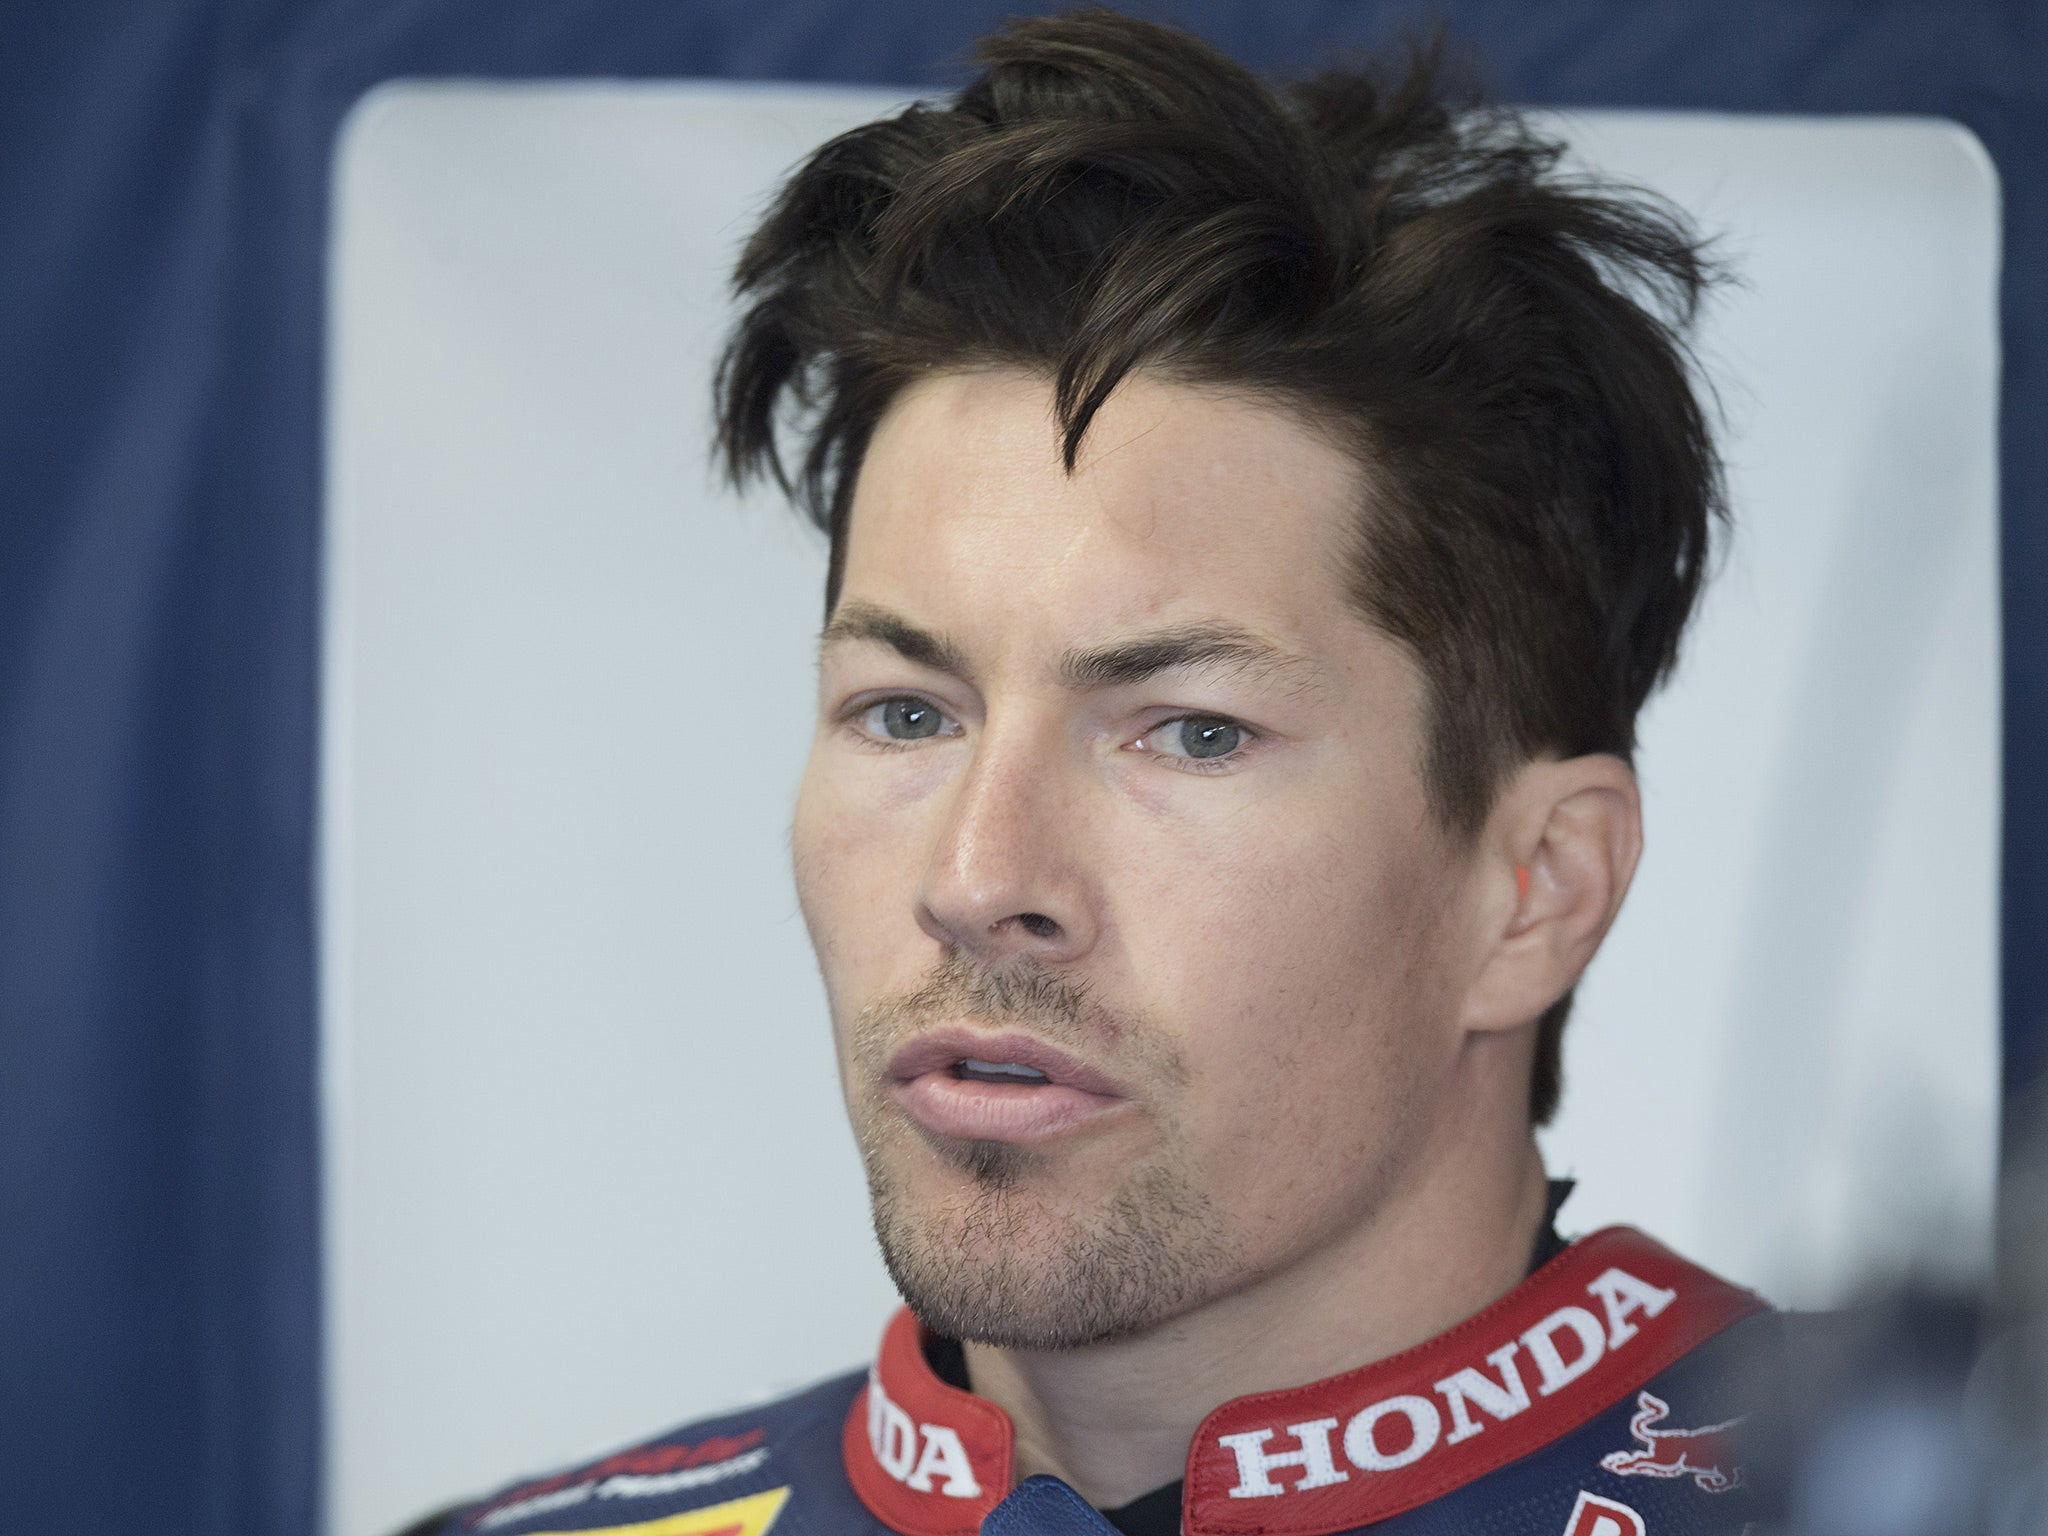 Nicky Hayden Dead Former Motogp World Champion Dies Aged 35 After Cycling Crash In Italy The Independent The Independent